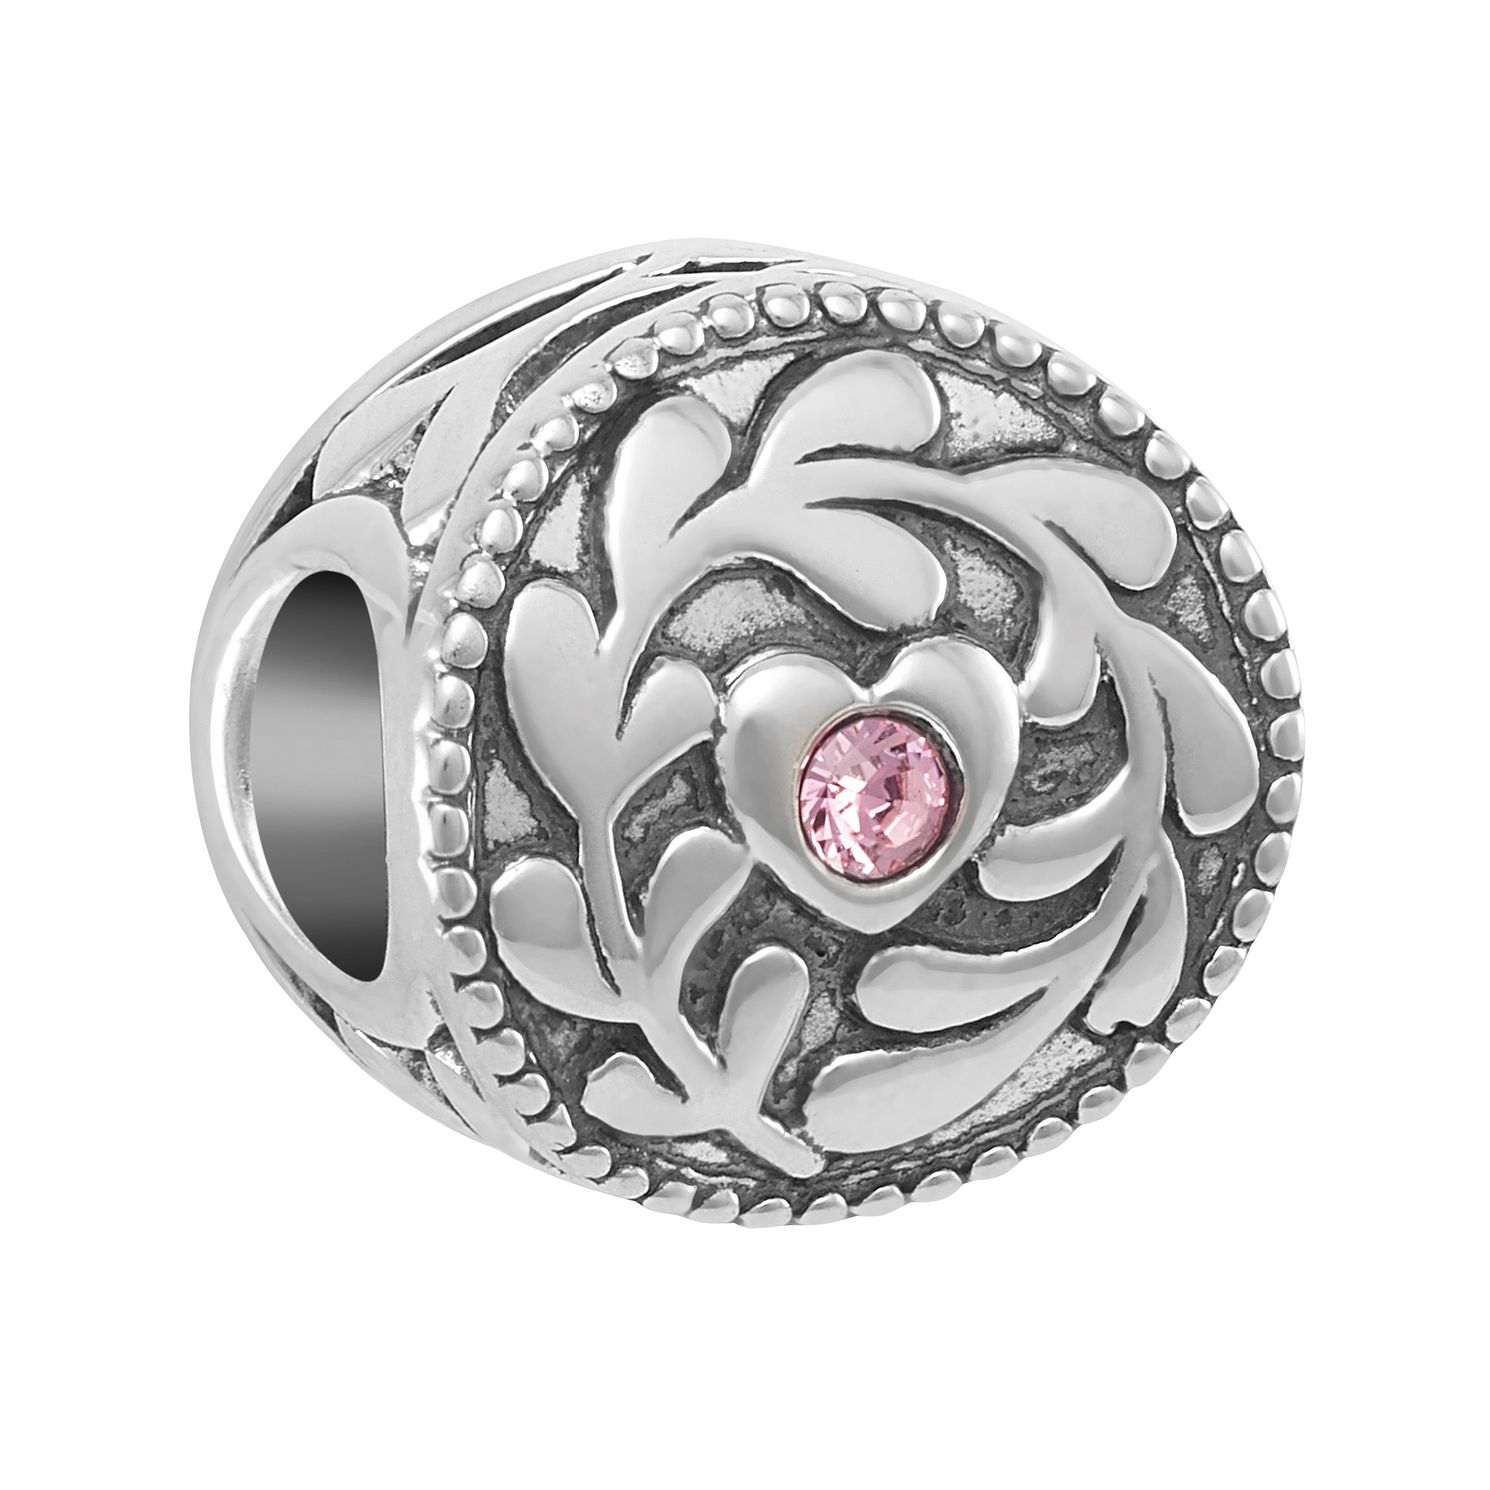 Chamilia Vine Swirl Heart Charm with Pink Swarovski Crystal - Product number 2219433